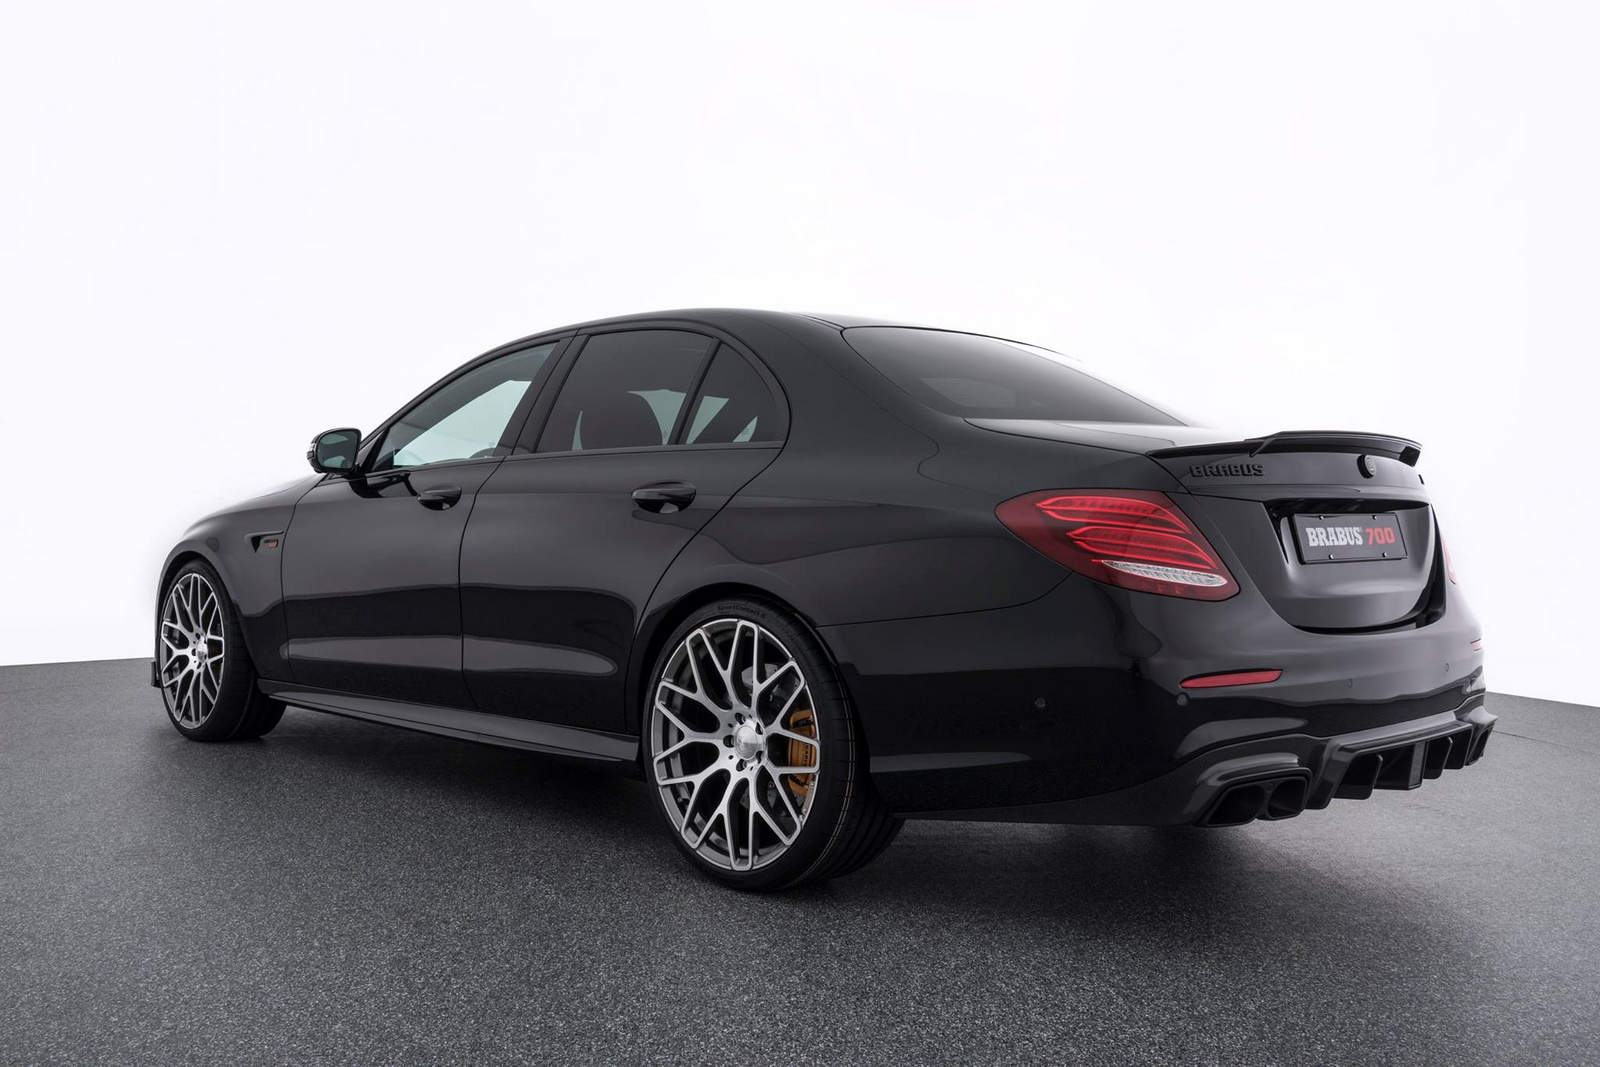 Brabus 700 Makes The Angry Mercedes Amg E63 S Even Angrier